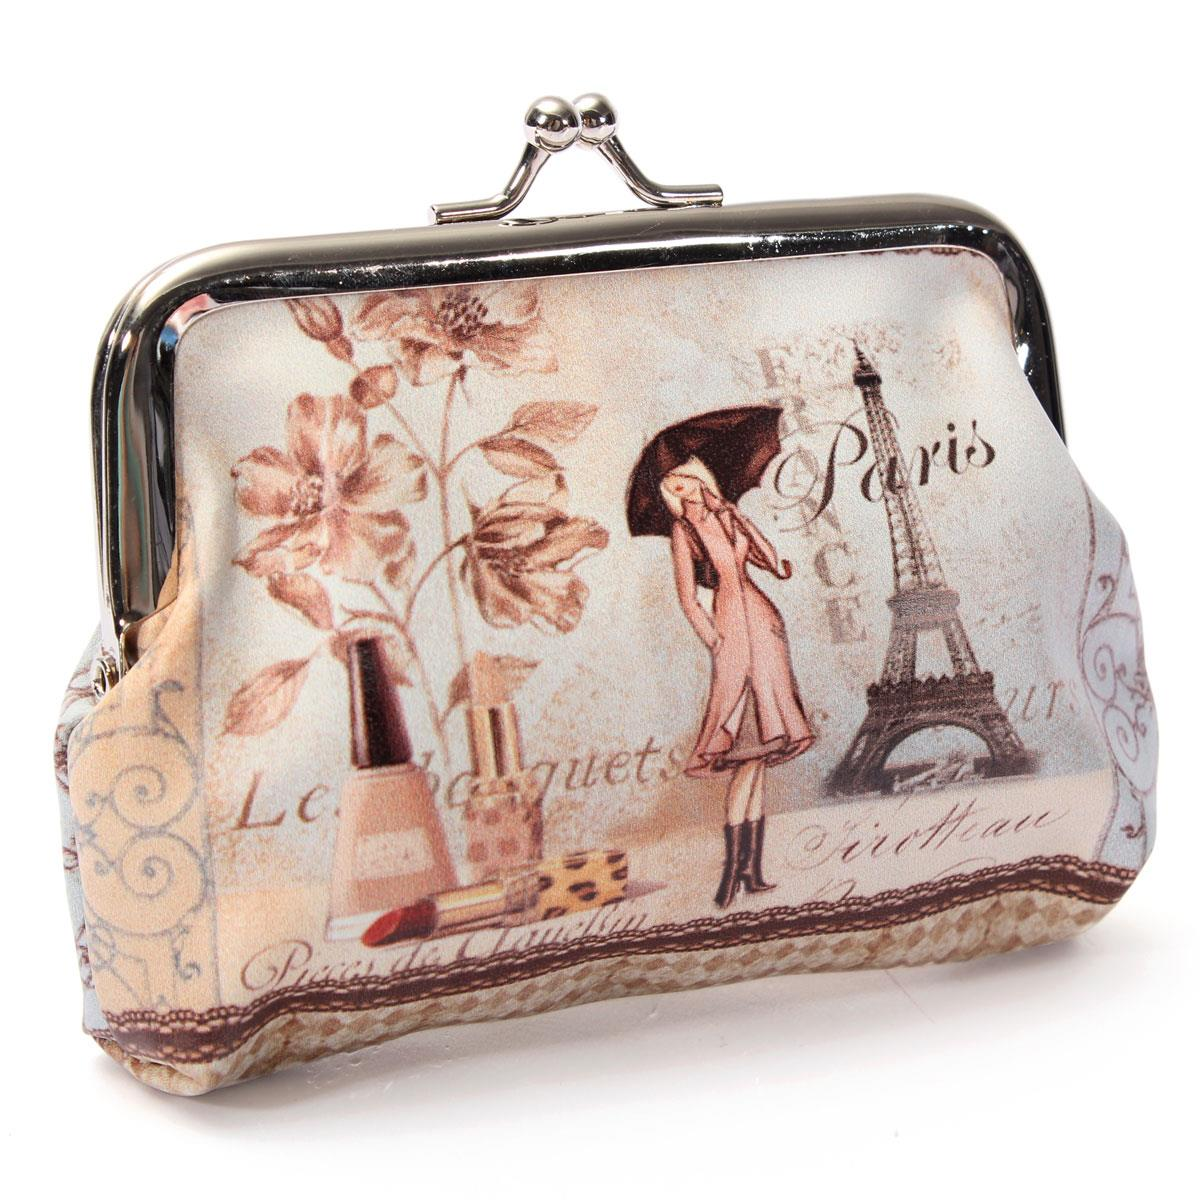 2015 Women Cute Coin Purse Top Leather Character Small Wallet Girls Change Pocket Pouch Hasp Keys Bag Metal Bar Opening New<br><br>Aliexpress